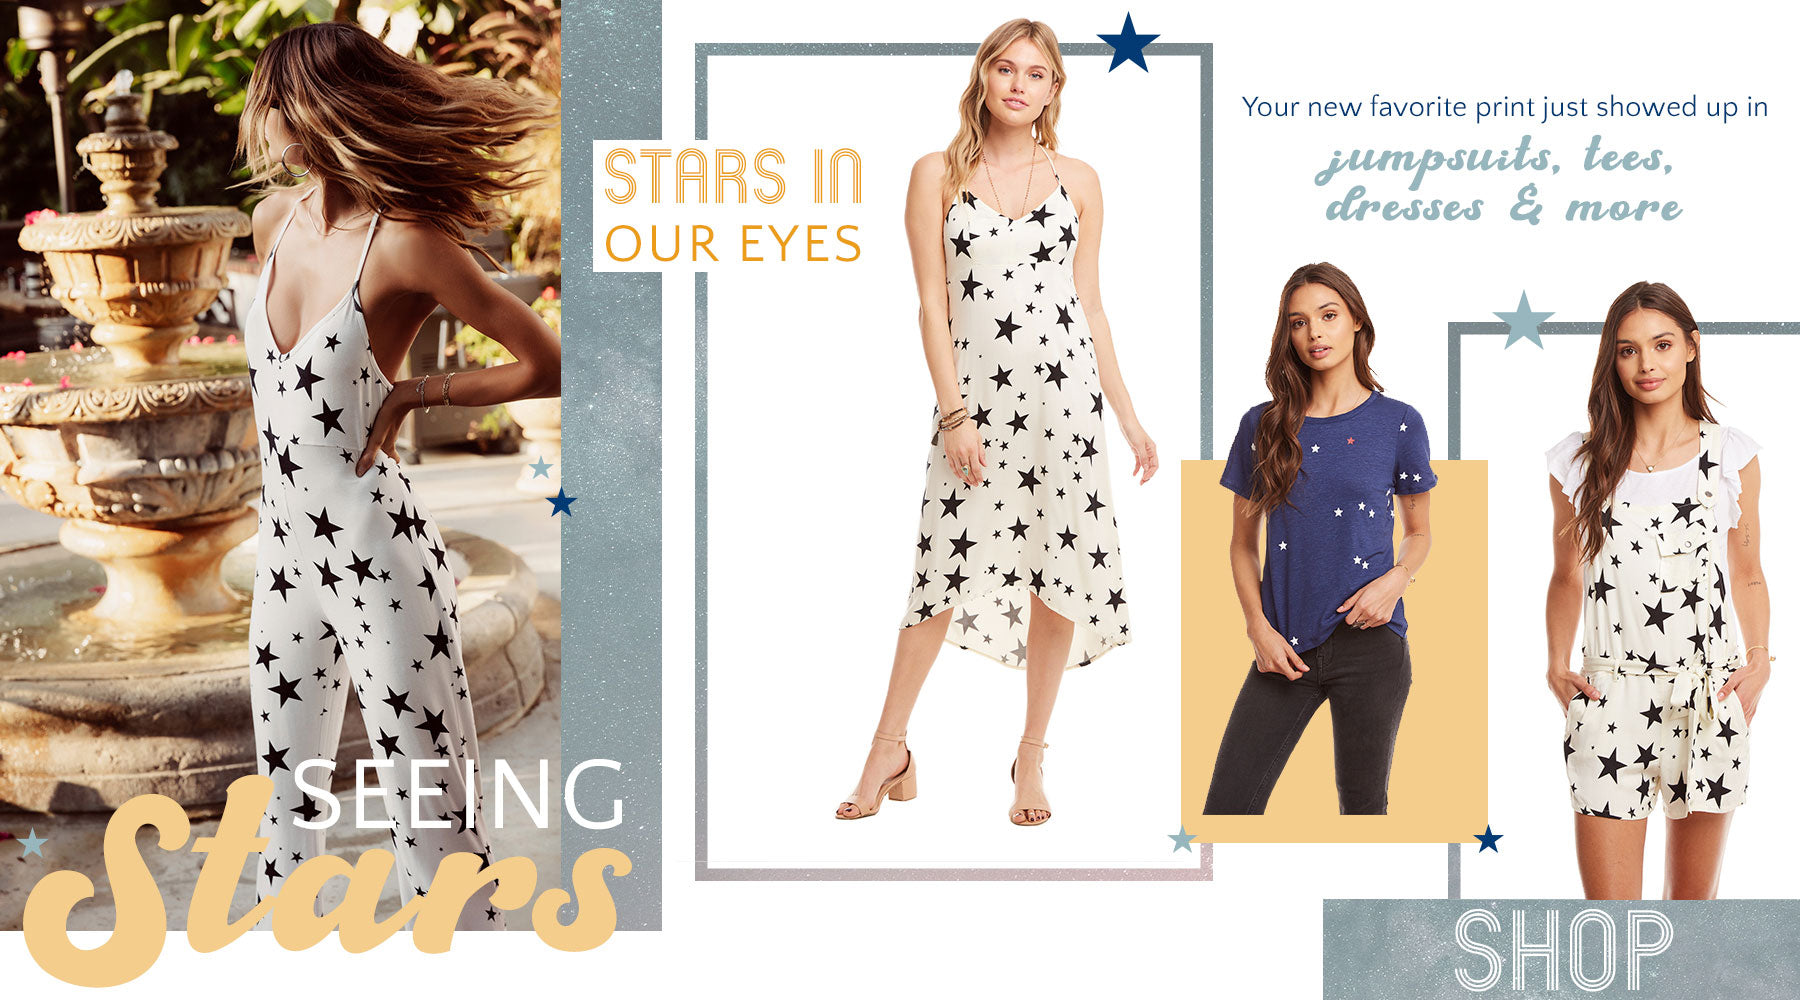 Seeing Stars!  Your new favorite print just showed up in jumpsuits, tees, dresses & more from Chaser